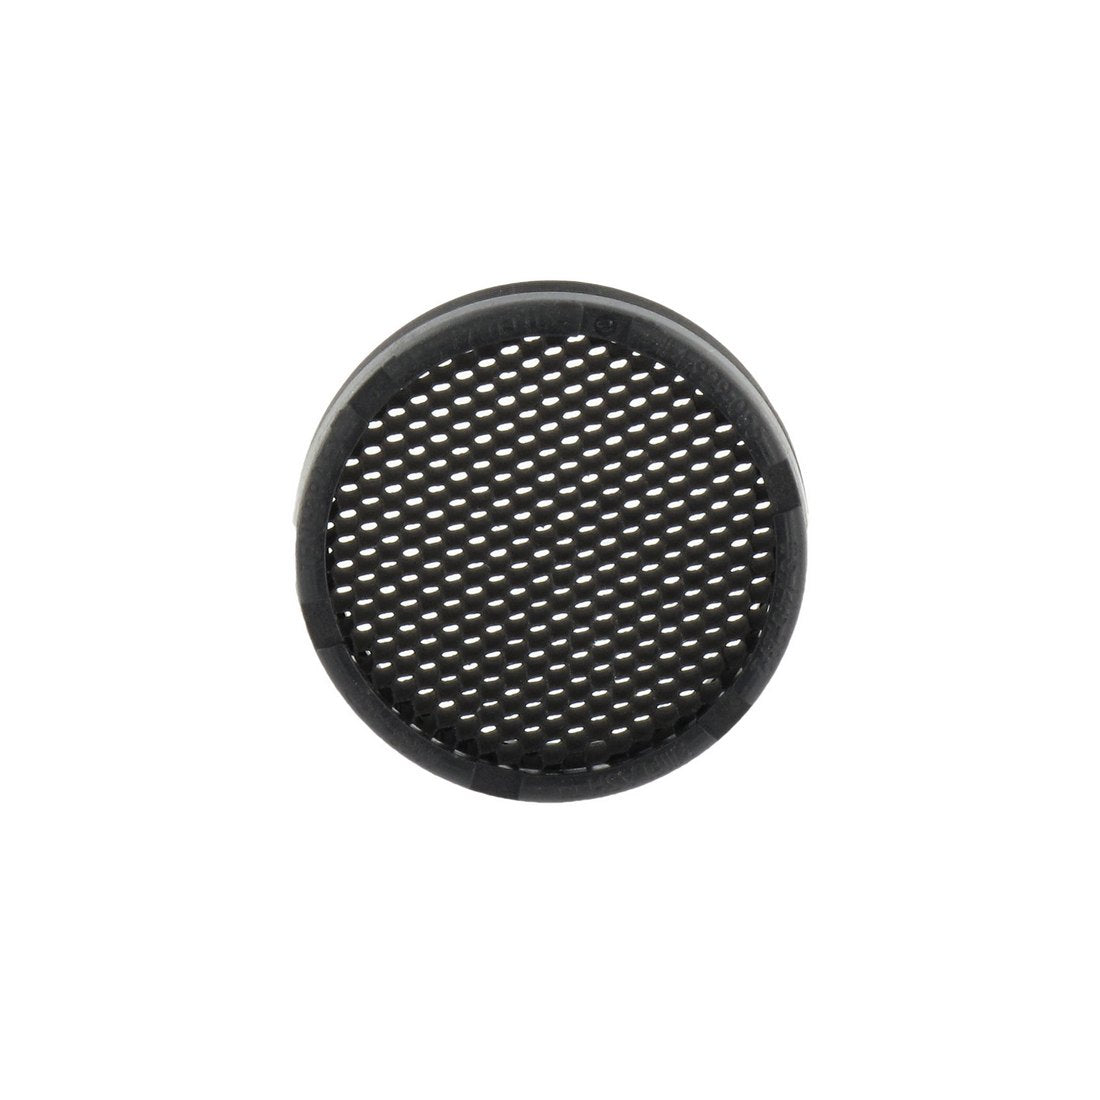 Aimpoint 12239 Ard Killflash Filter - Security Pro USA